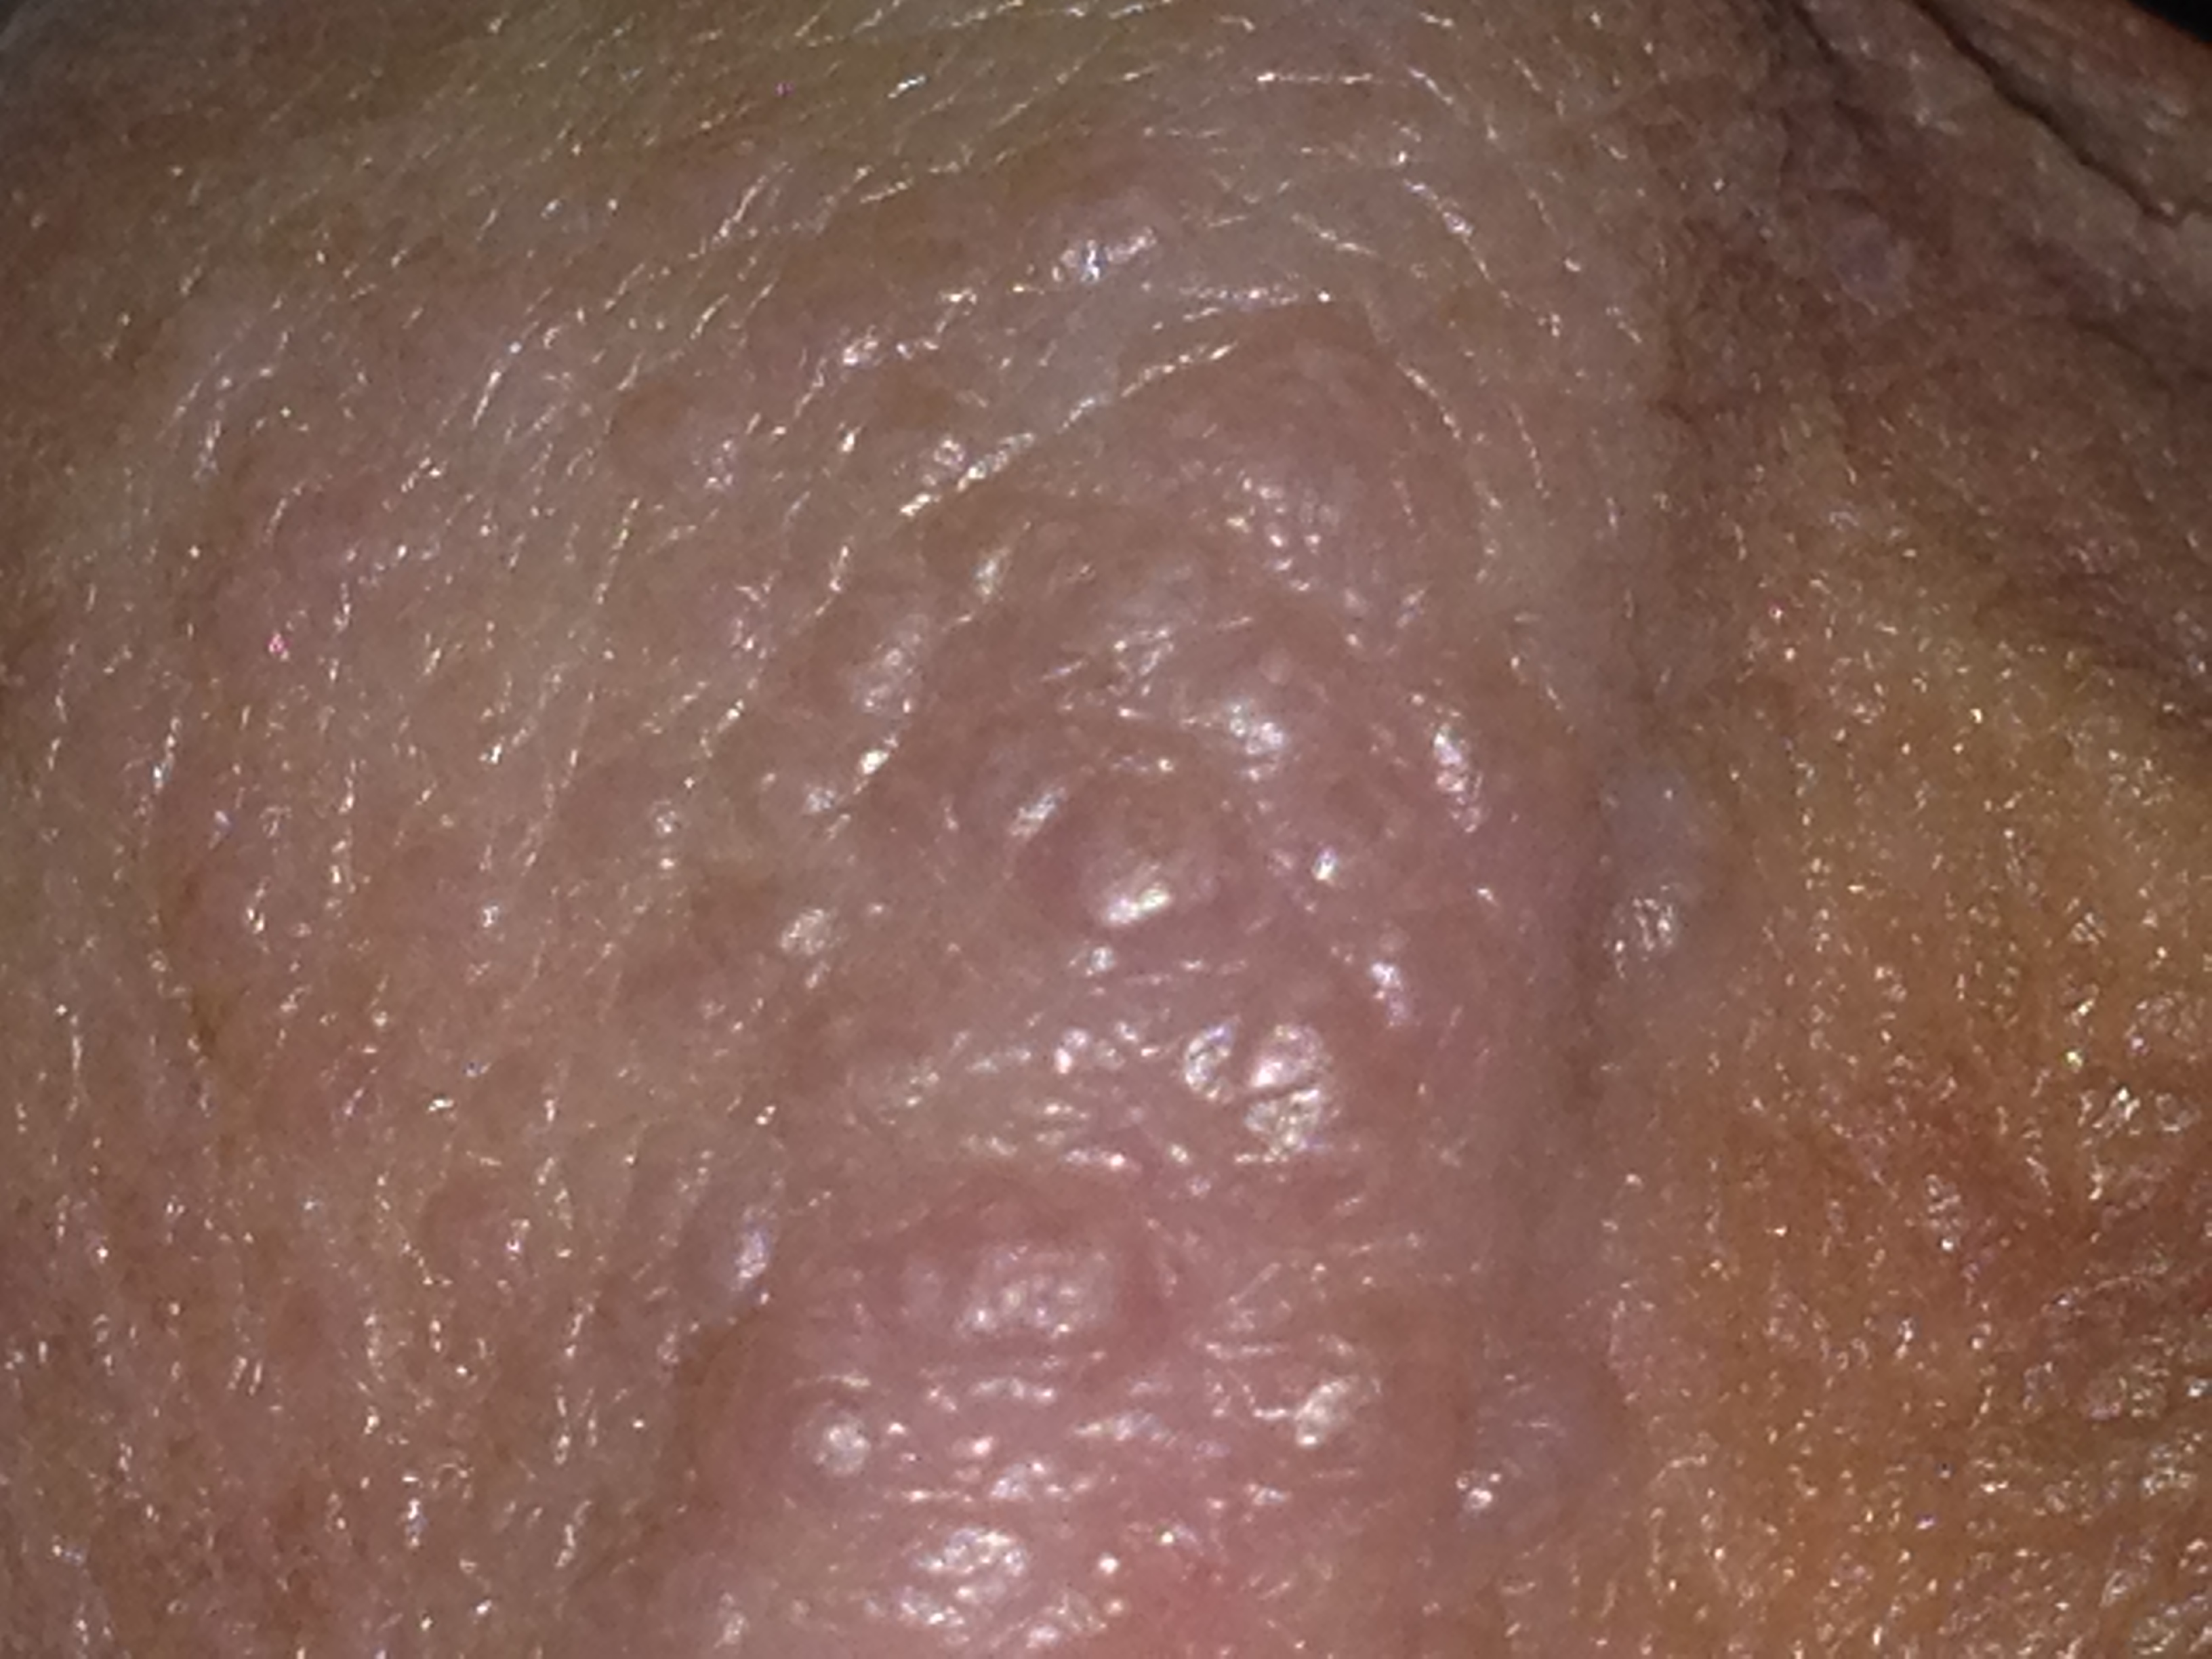 Water Blisters On Penis 27